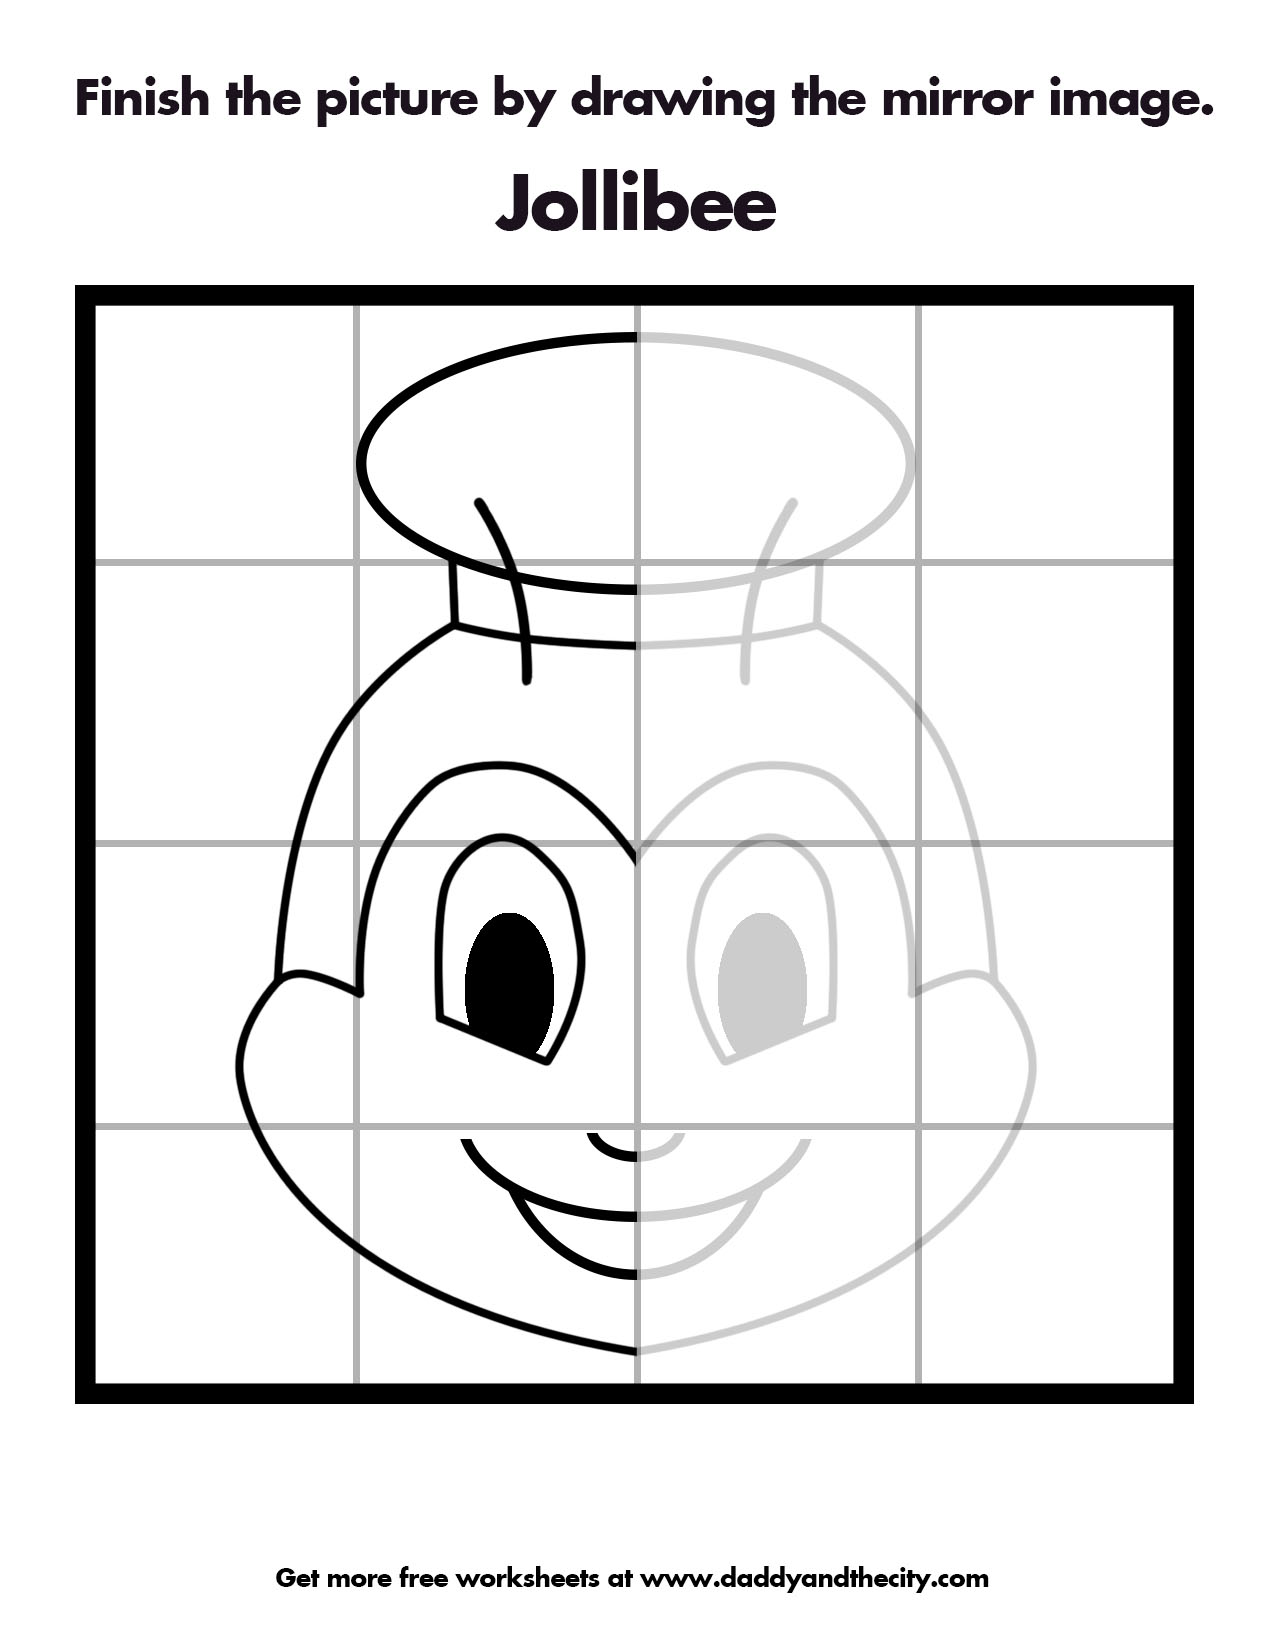 Jollibee Mirror Image Worksheet Daddy And The City